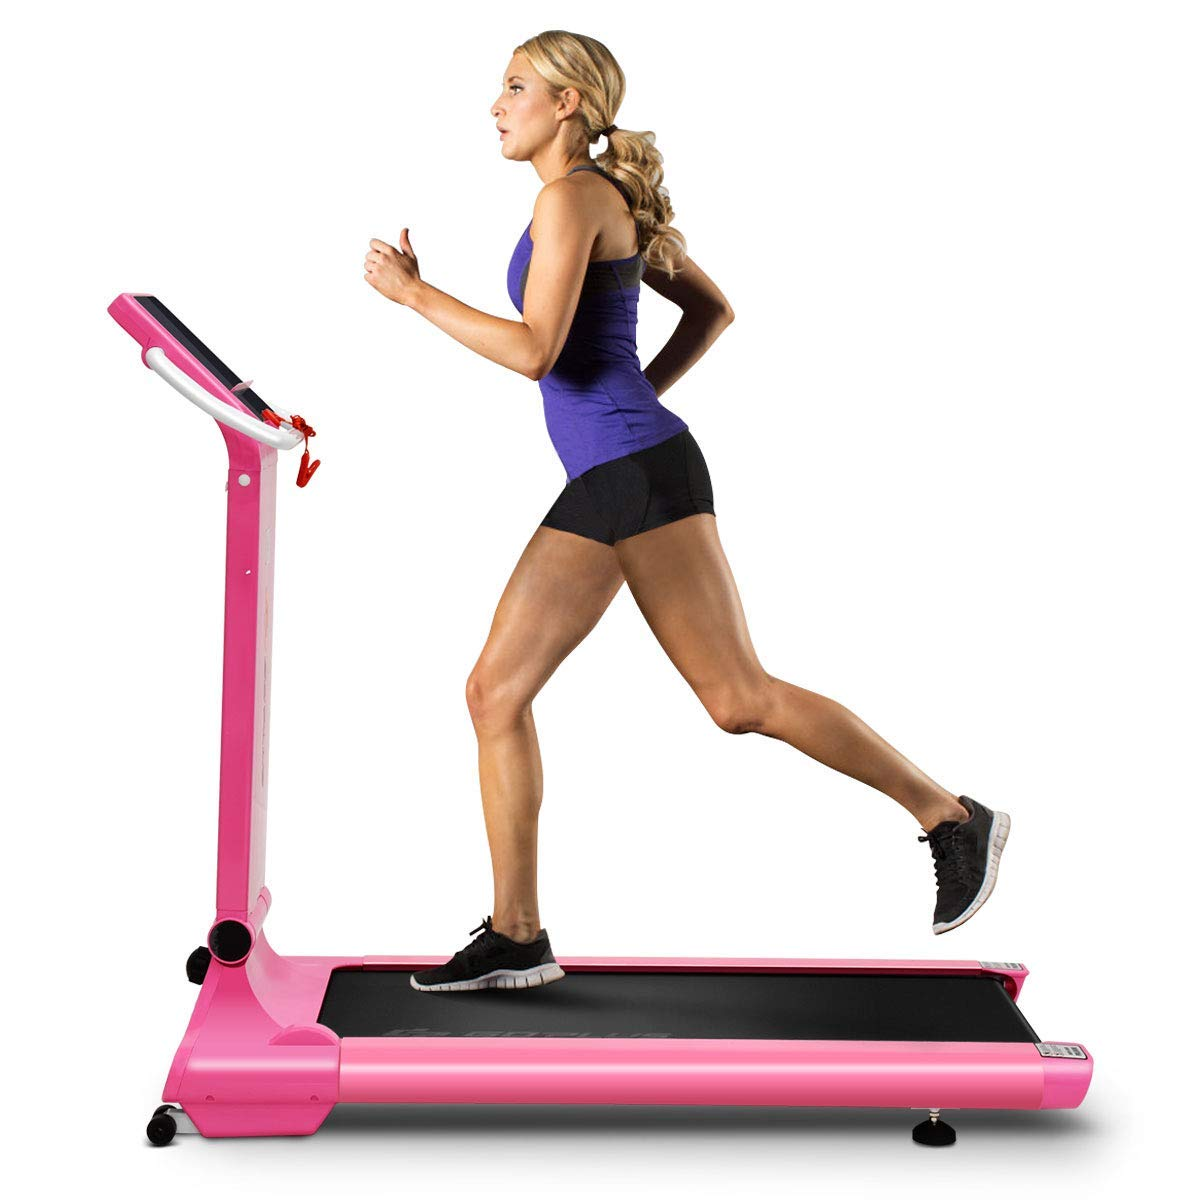 Goplus 1.5HP Electric Folding Treadmill Portable Motorized Running Machine Home Gym Cardio Fitness w/App (Pink) by Goplus (Image #4)